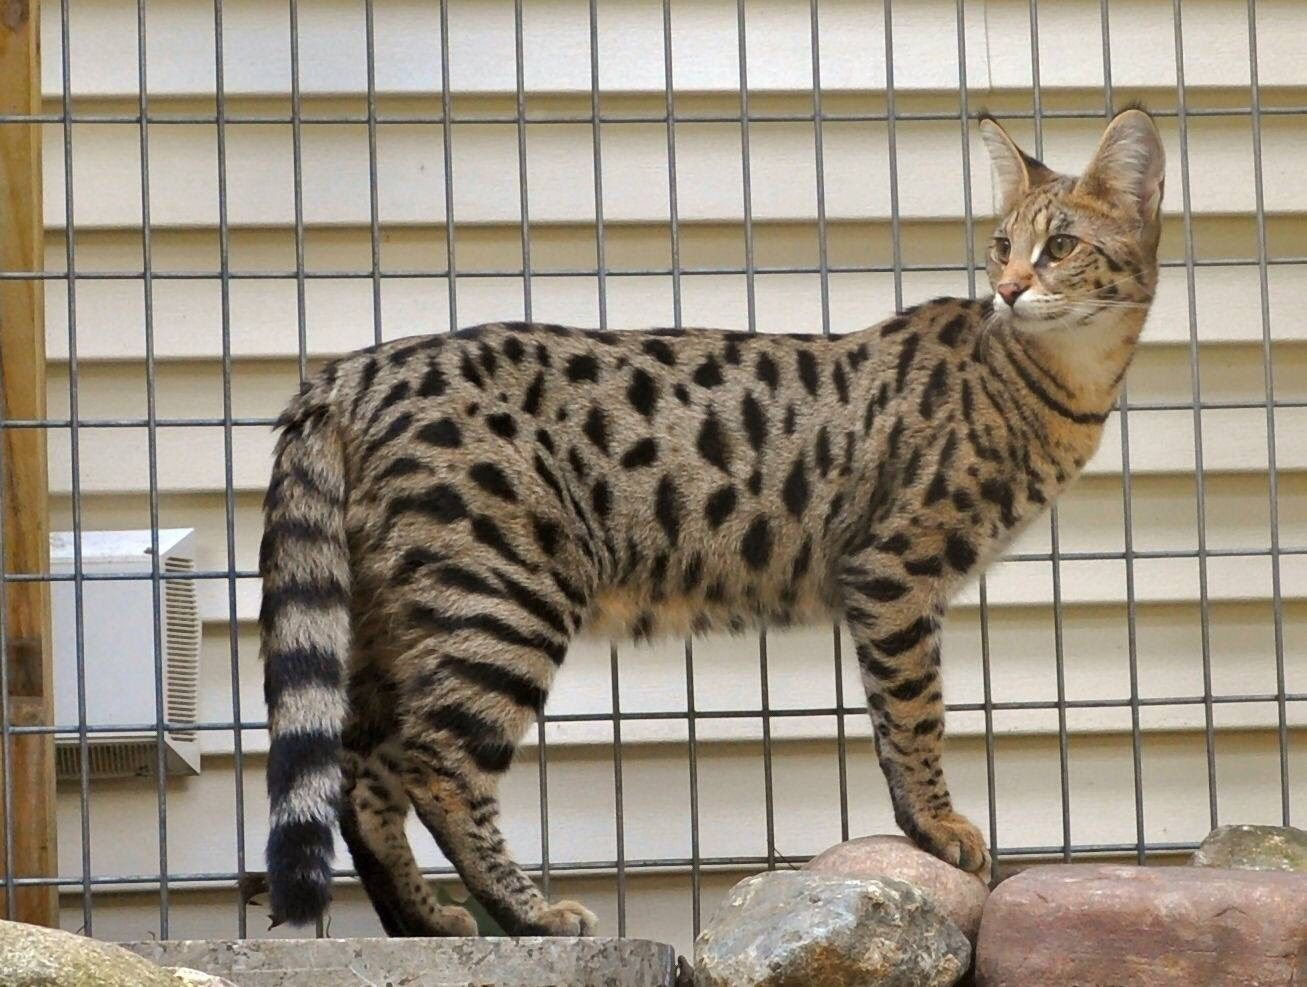 Traverse City Woman Reunited With Missing F1 Savannah Cat Savannah Chat Savannah Cat Cats